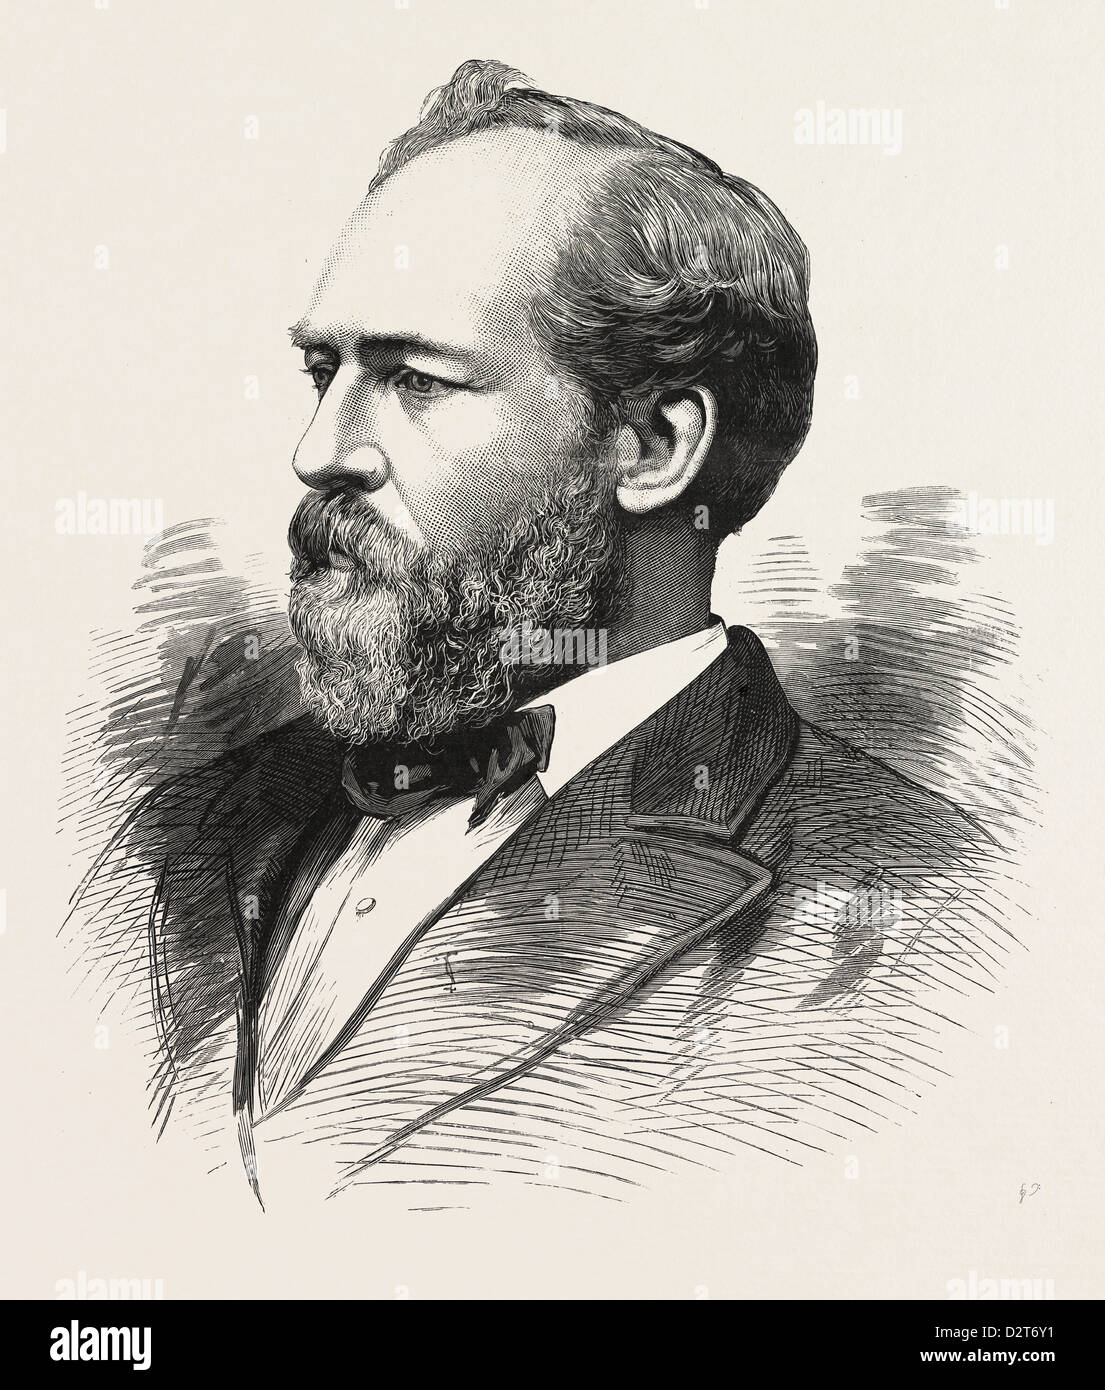 HON. JAMES A. GARFIELD, PRESIDENT-ELECT OF THE UNITED STATES, U.S., engraving 1880 1881 - Stock Image